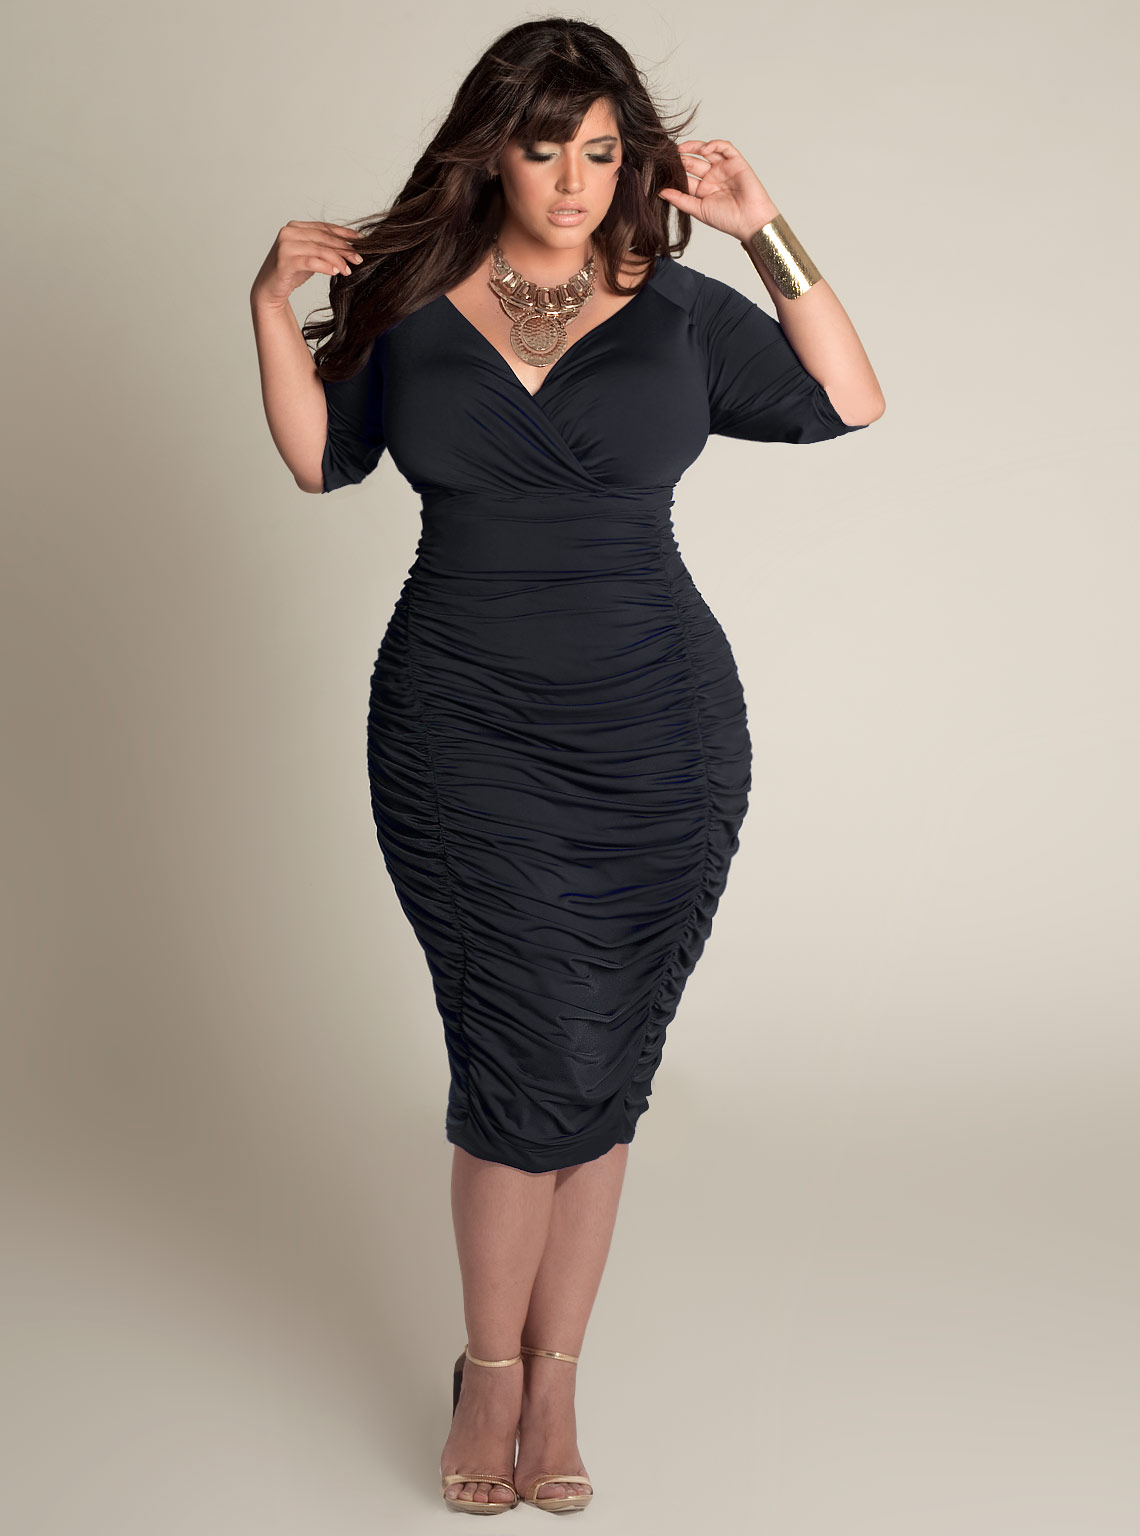 Plus Size Black Dresses  Dressed Up Girl